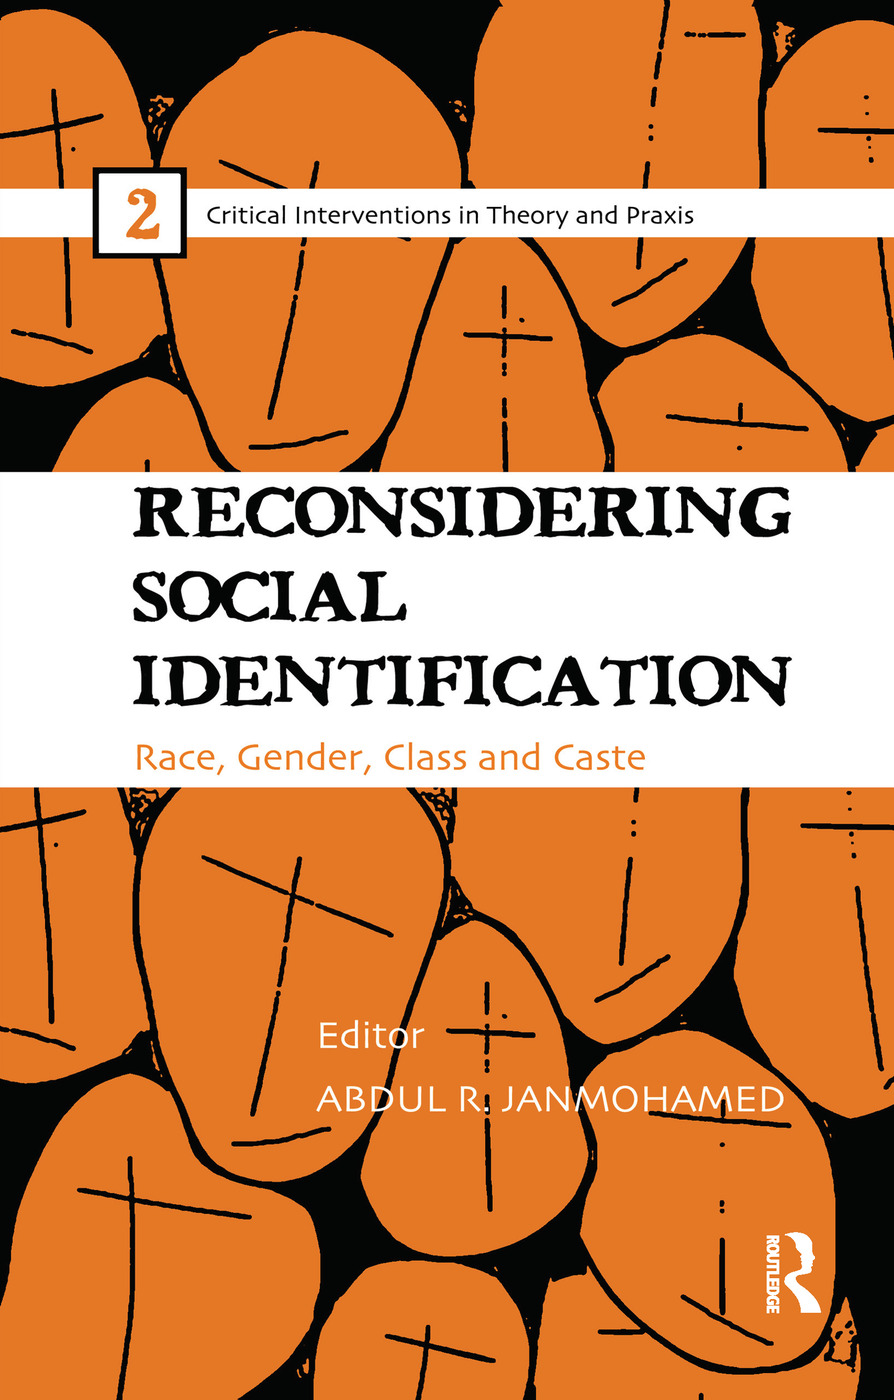 Reconsidering Social Identification: Race, Gender, Class and Caste book cover